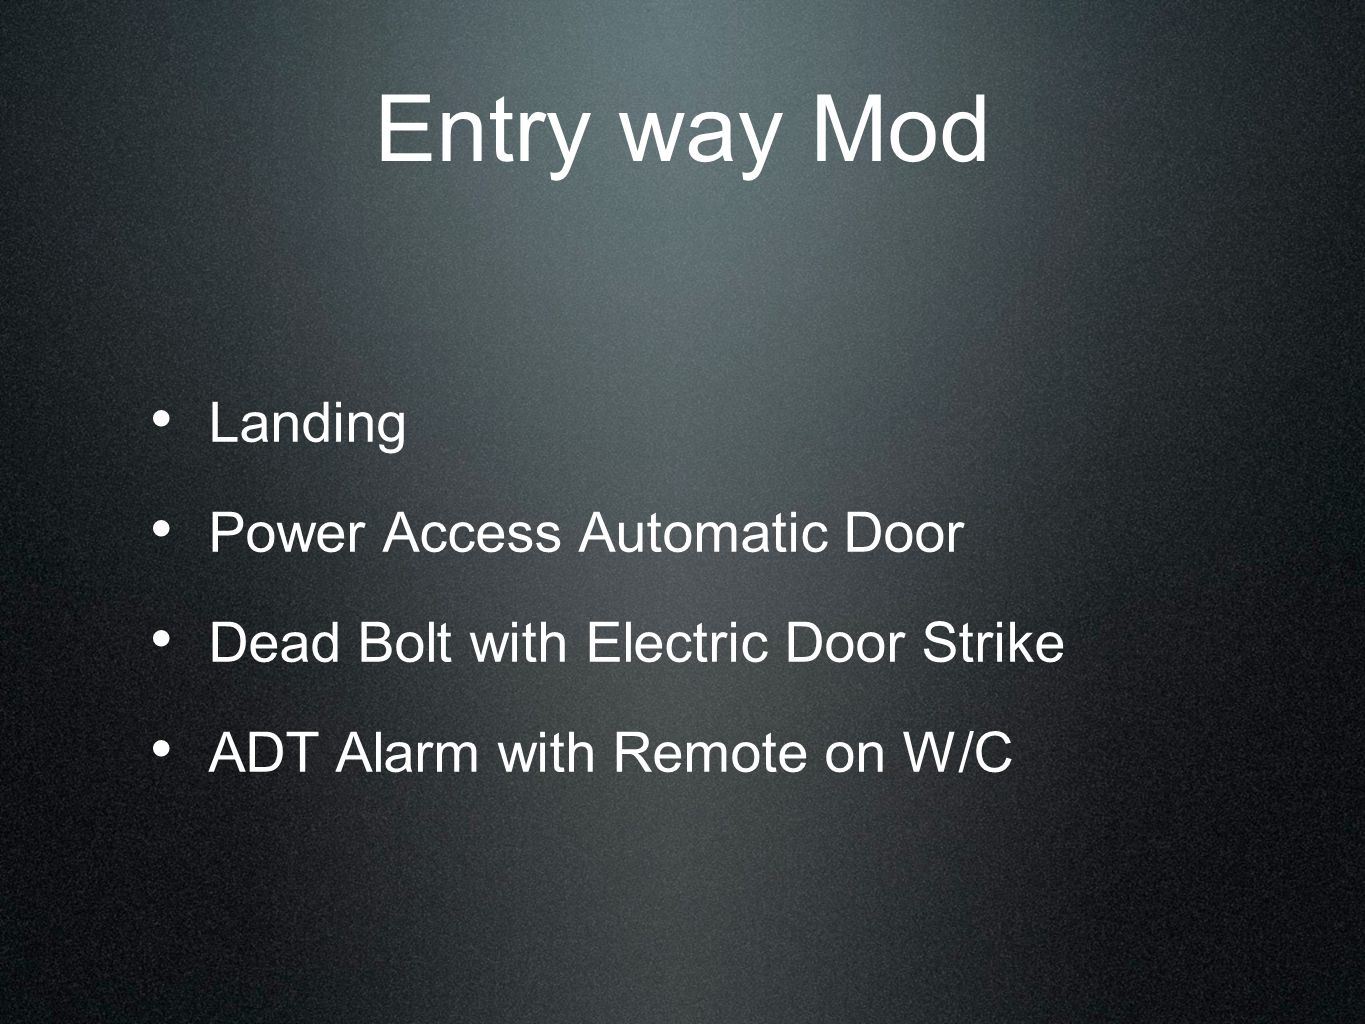 Entry way Mod Landing Power Access Automatic Door Dead Bolt with Electric Door Strike ADT Alarm with Remote on W/C